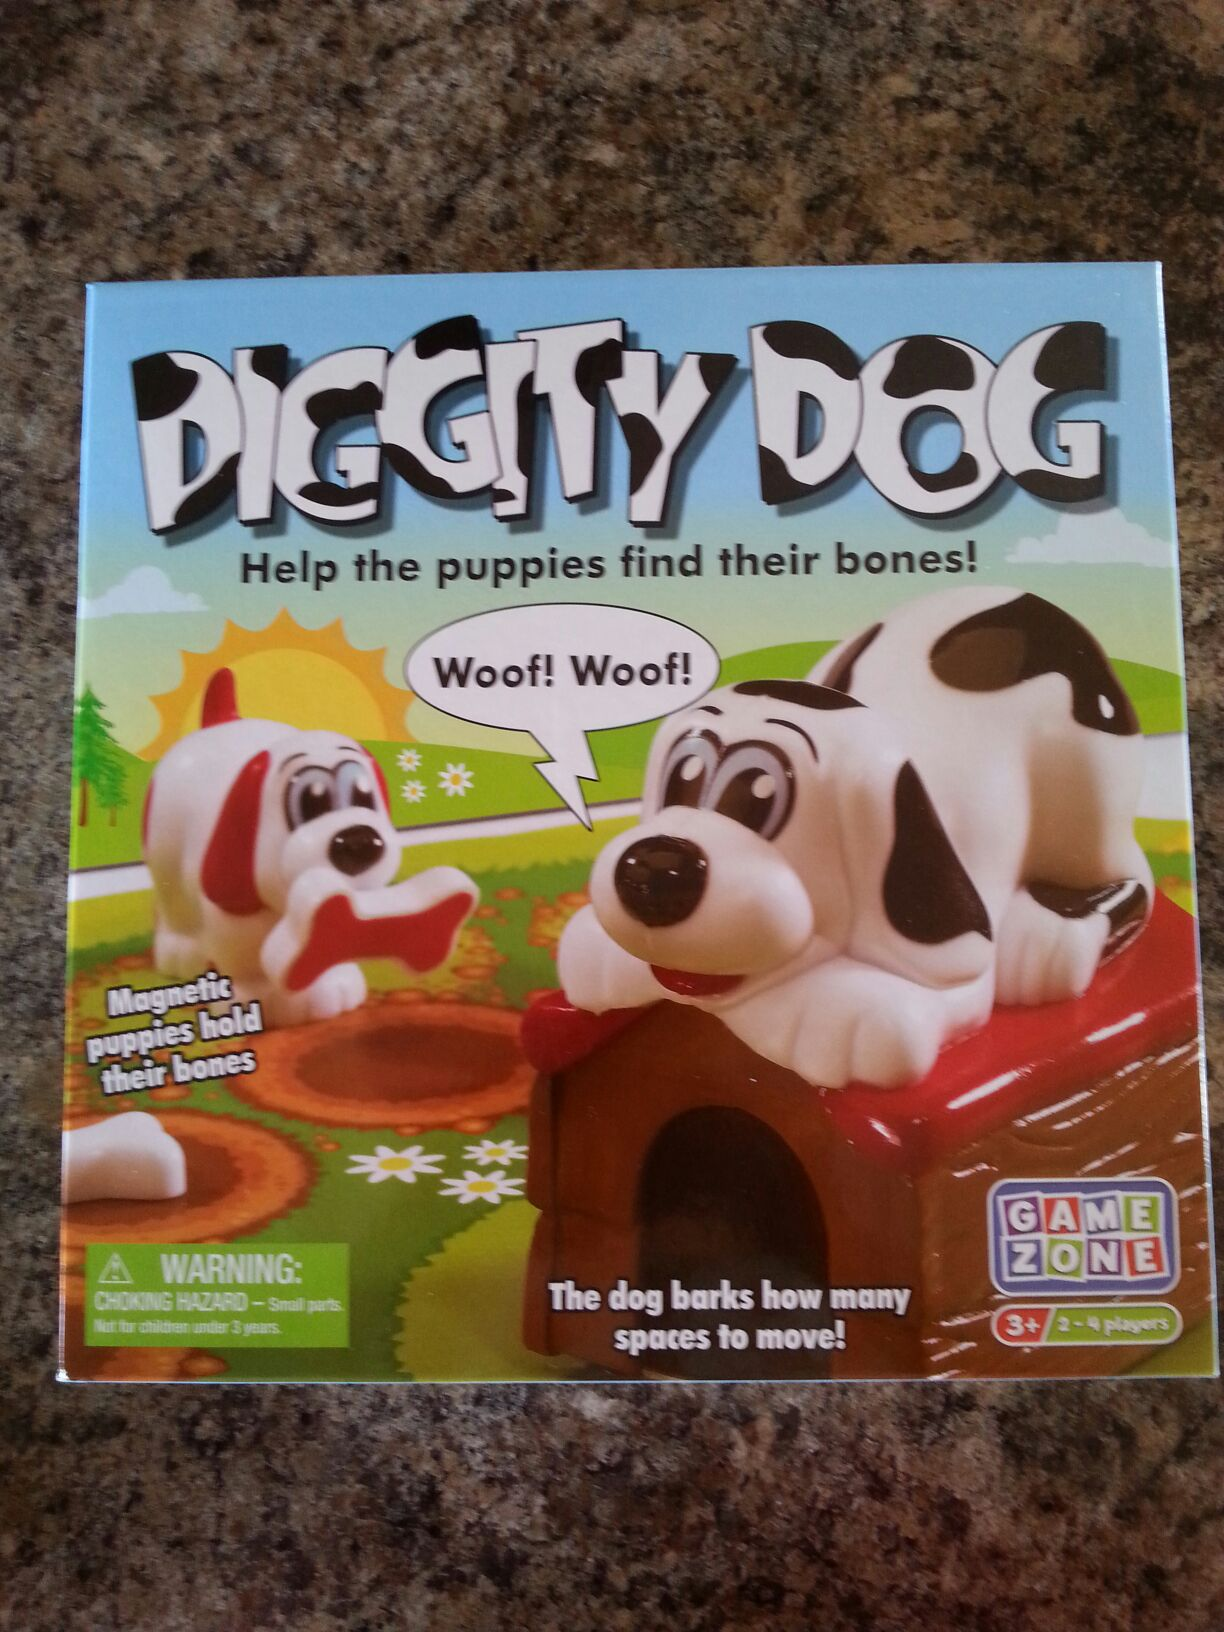 Diggity Dog Board Game front image (front cover)